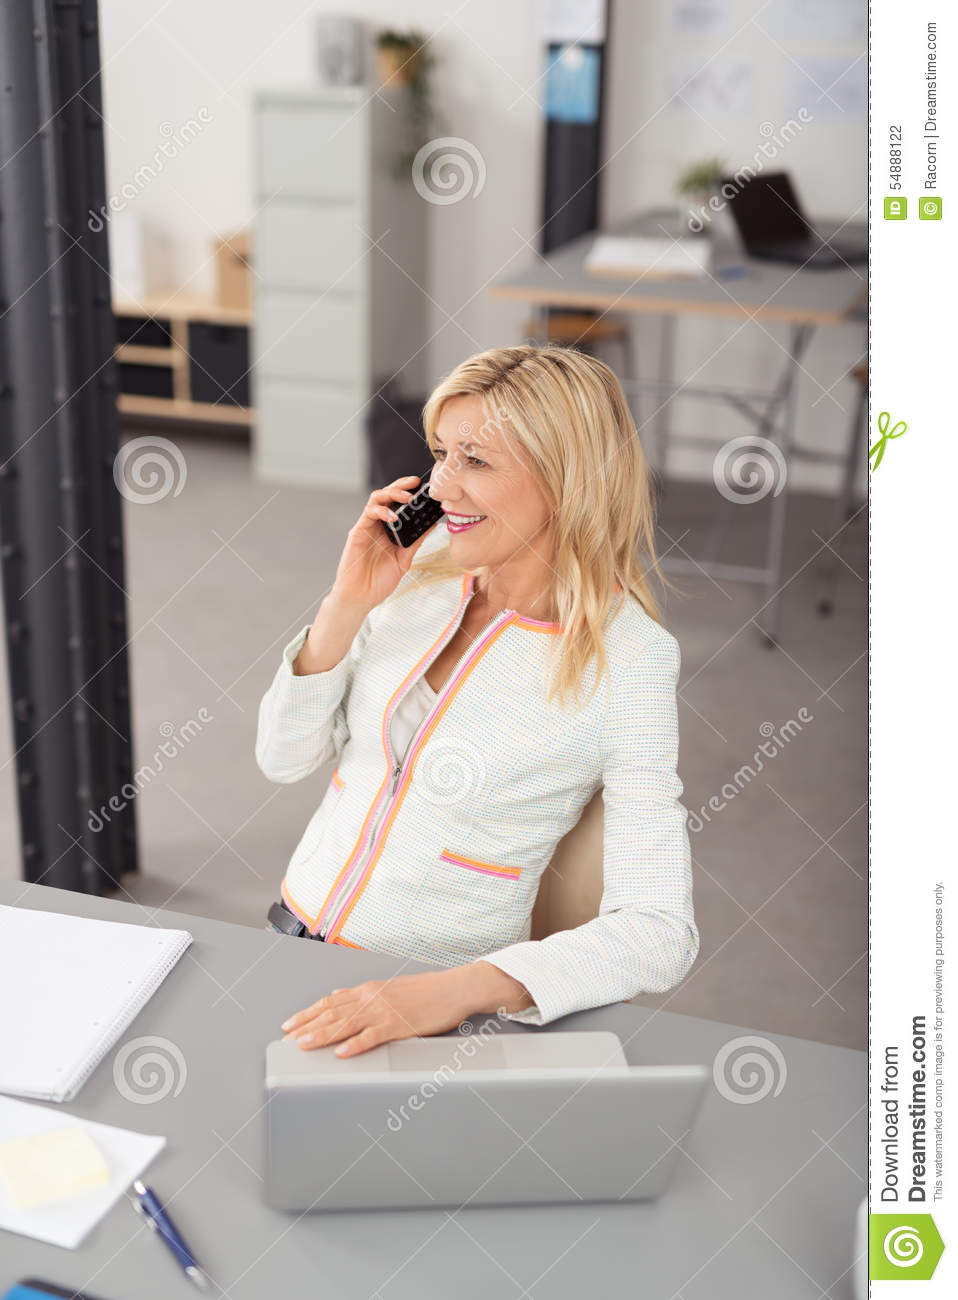 Happy Businesswoman Talking To Someone On Phone Stock Photo